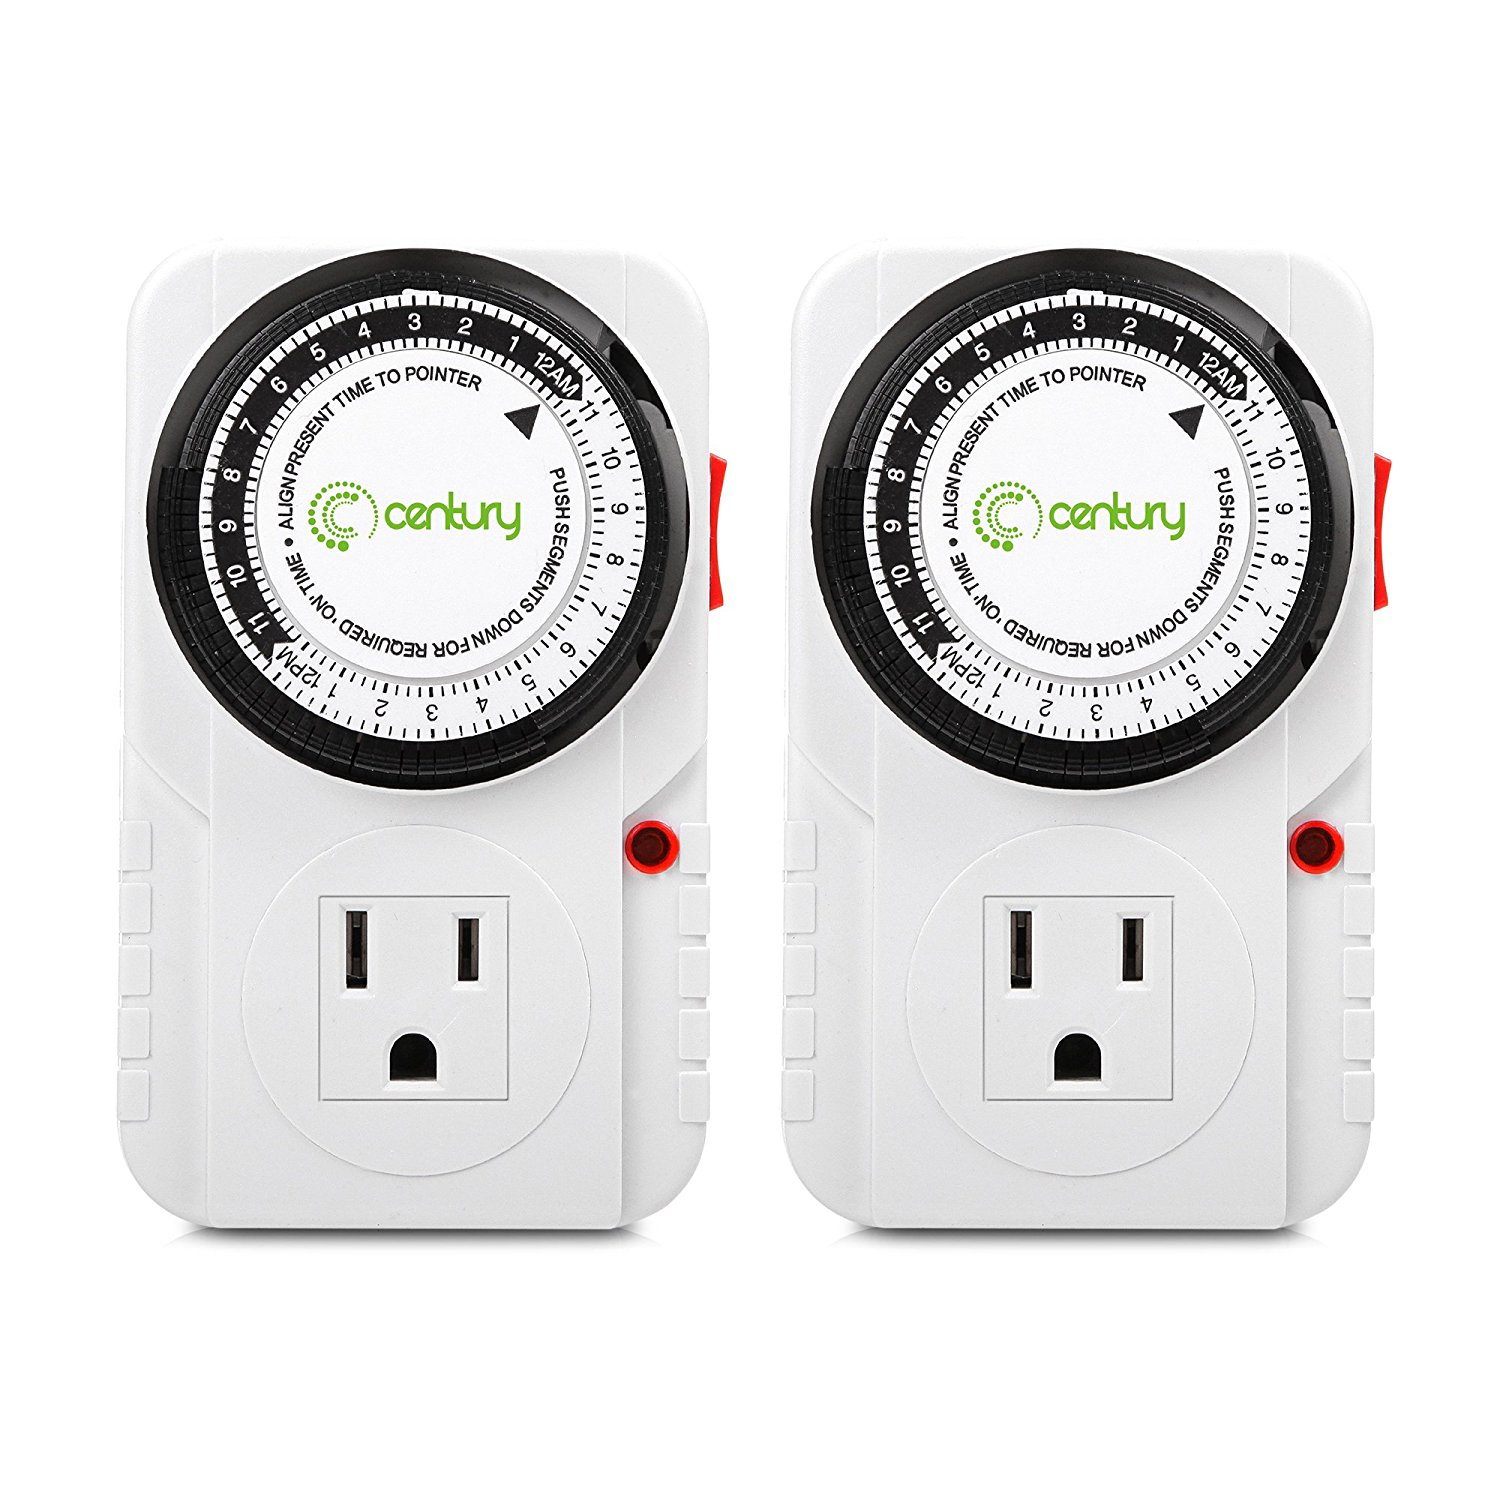 Century 24 Hour Plug-in Mechanical Timer Grounded Outlet 2 Pack by Century Products